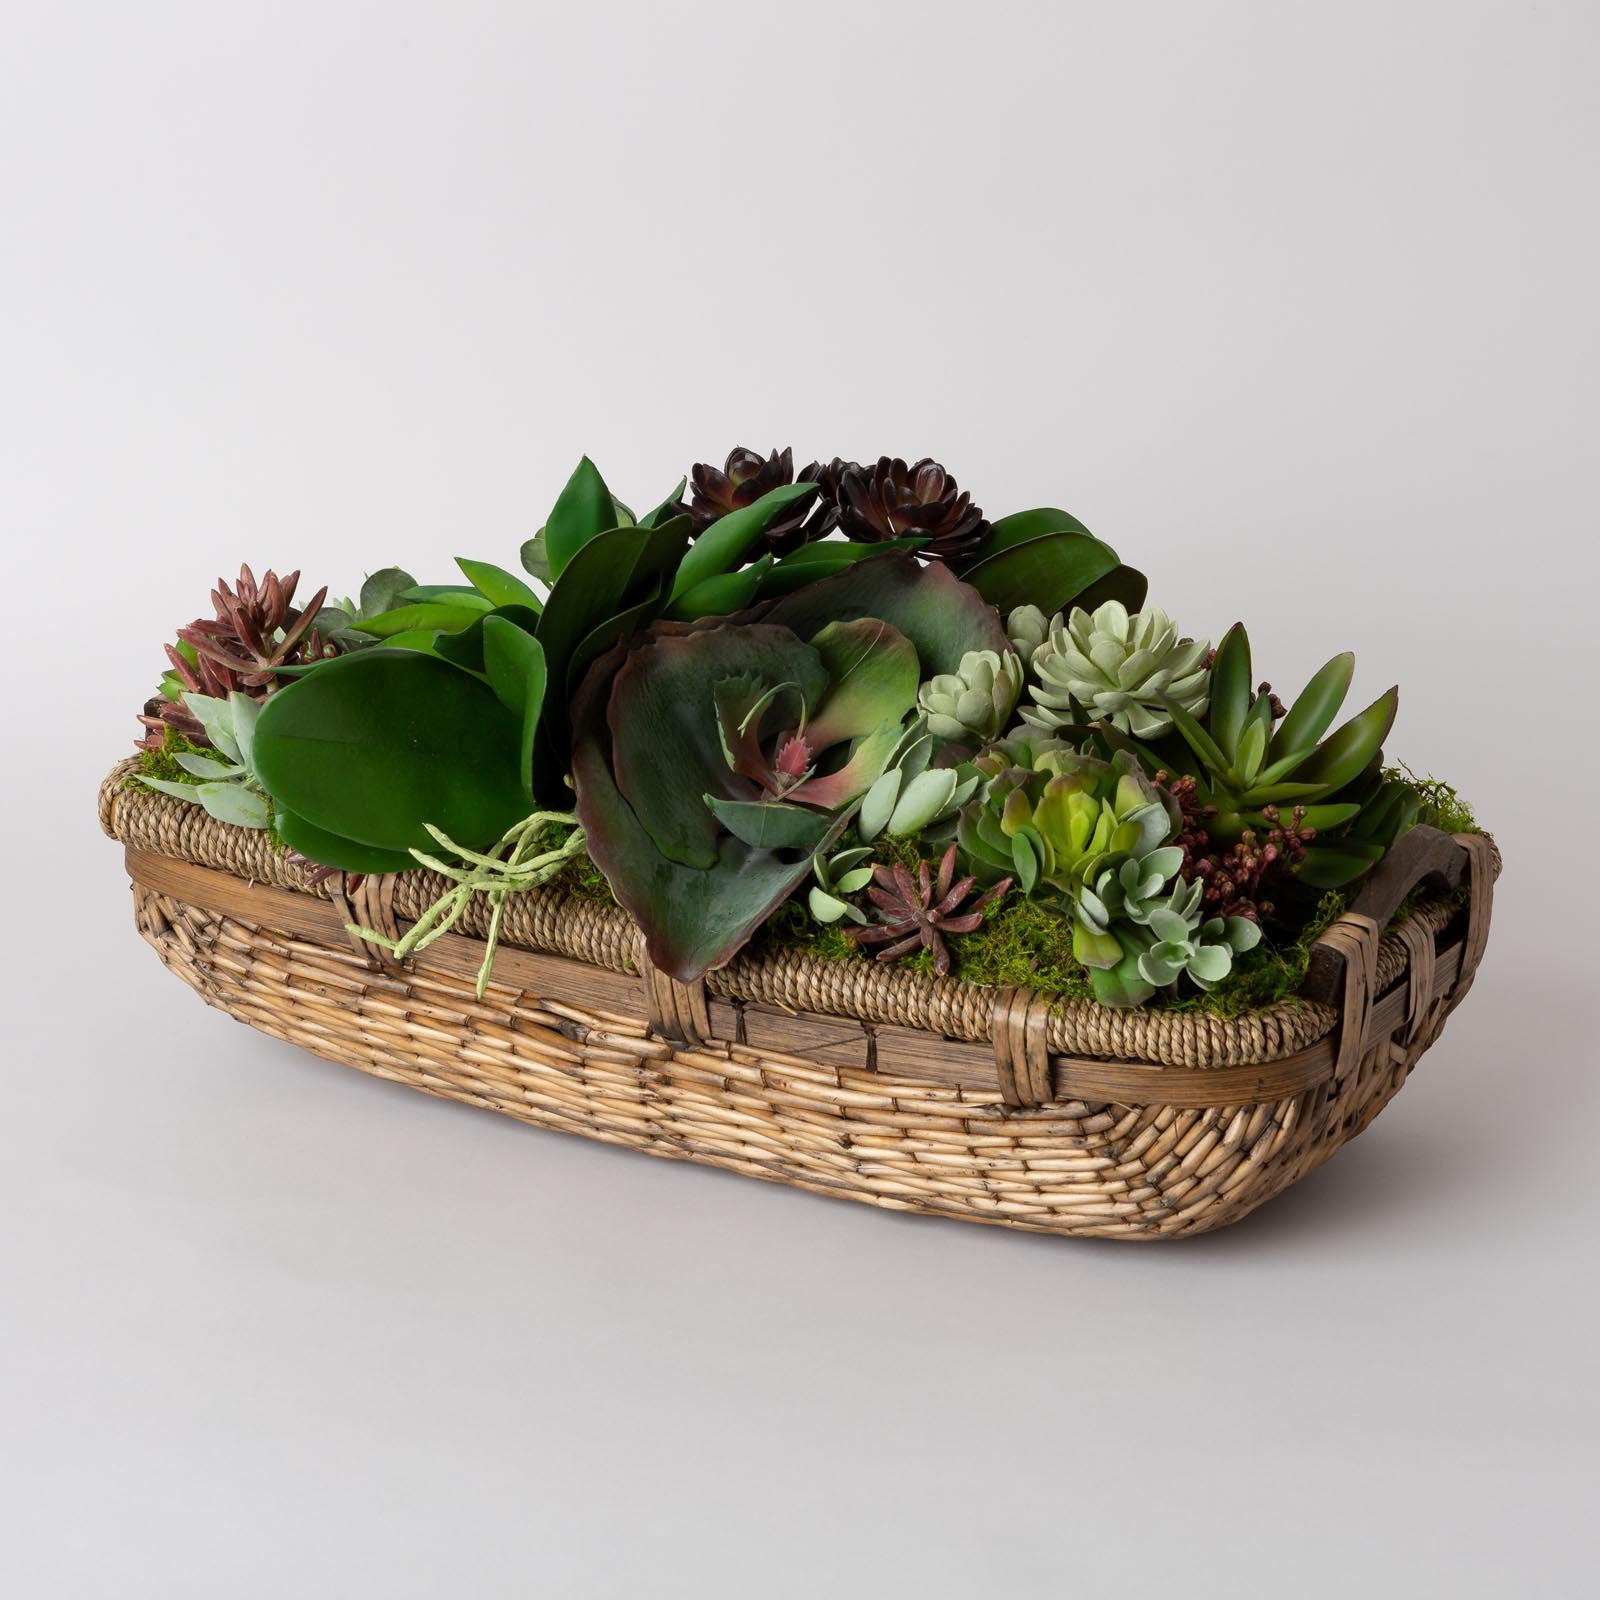 The Succulent Basket